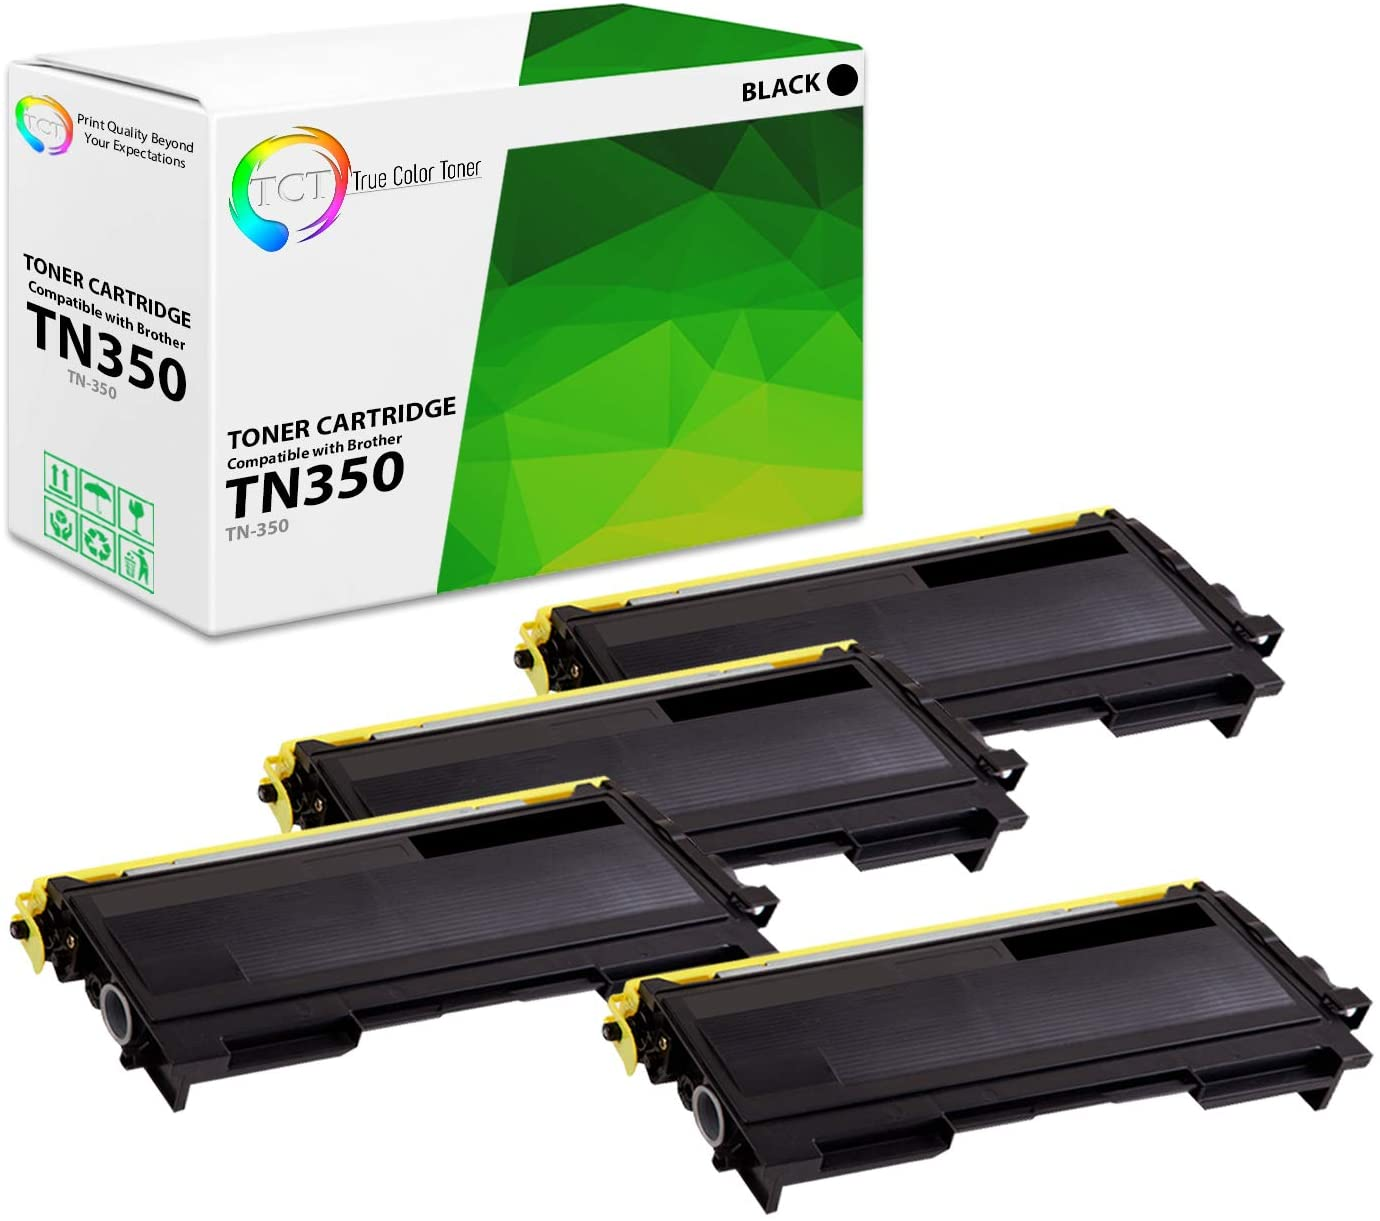 TCT Premium Compatible Toner Cartridge Replacement for Brother TN-350 TN350 Black Works with Brother HL-2030 2070N, DCP-7020, FAX-2820 2825 2920, MFC-7220 Printers (2,500 Pages) - 4 Pack